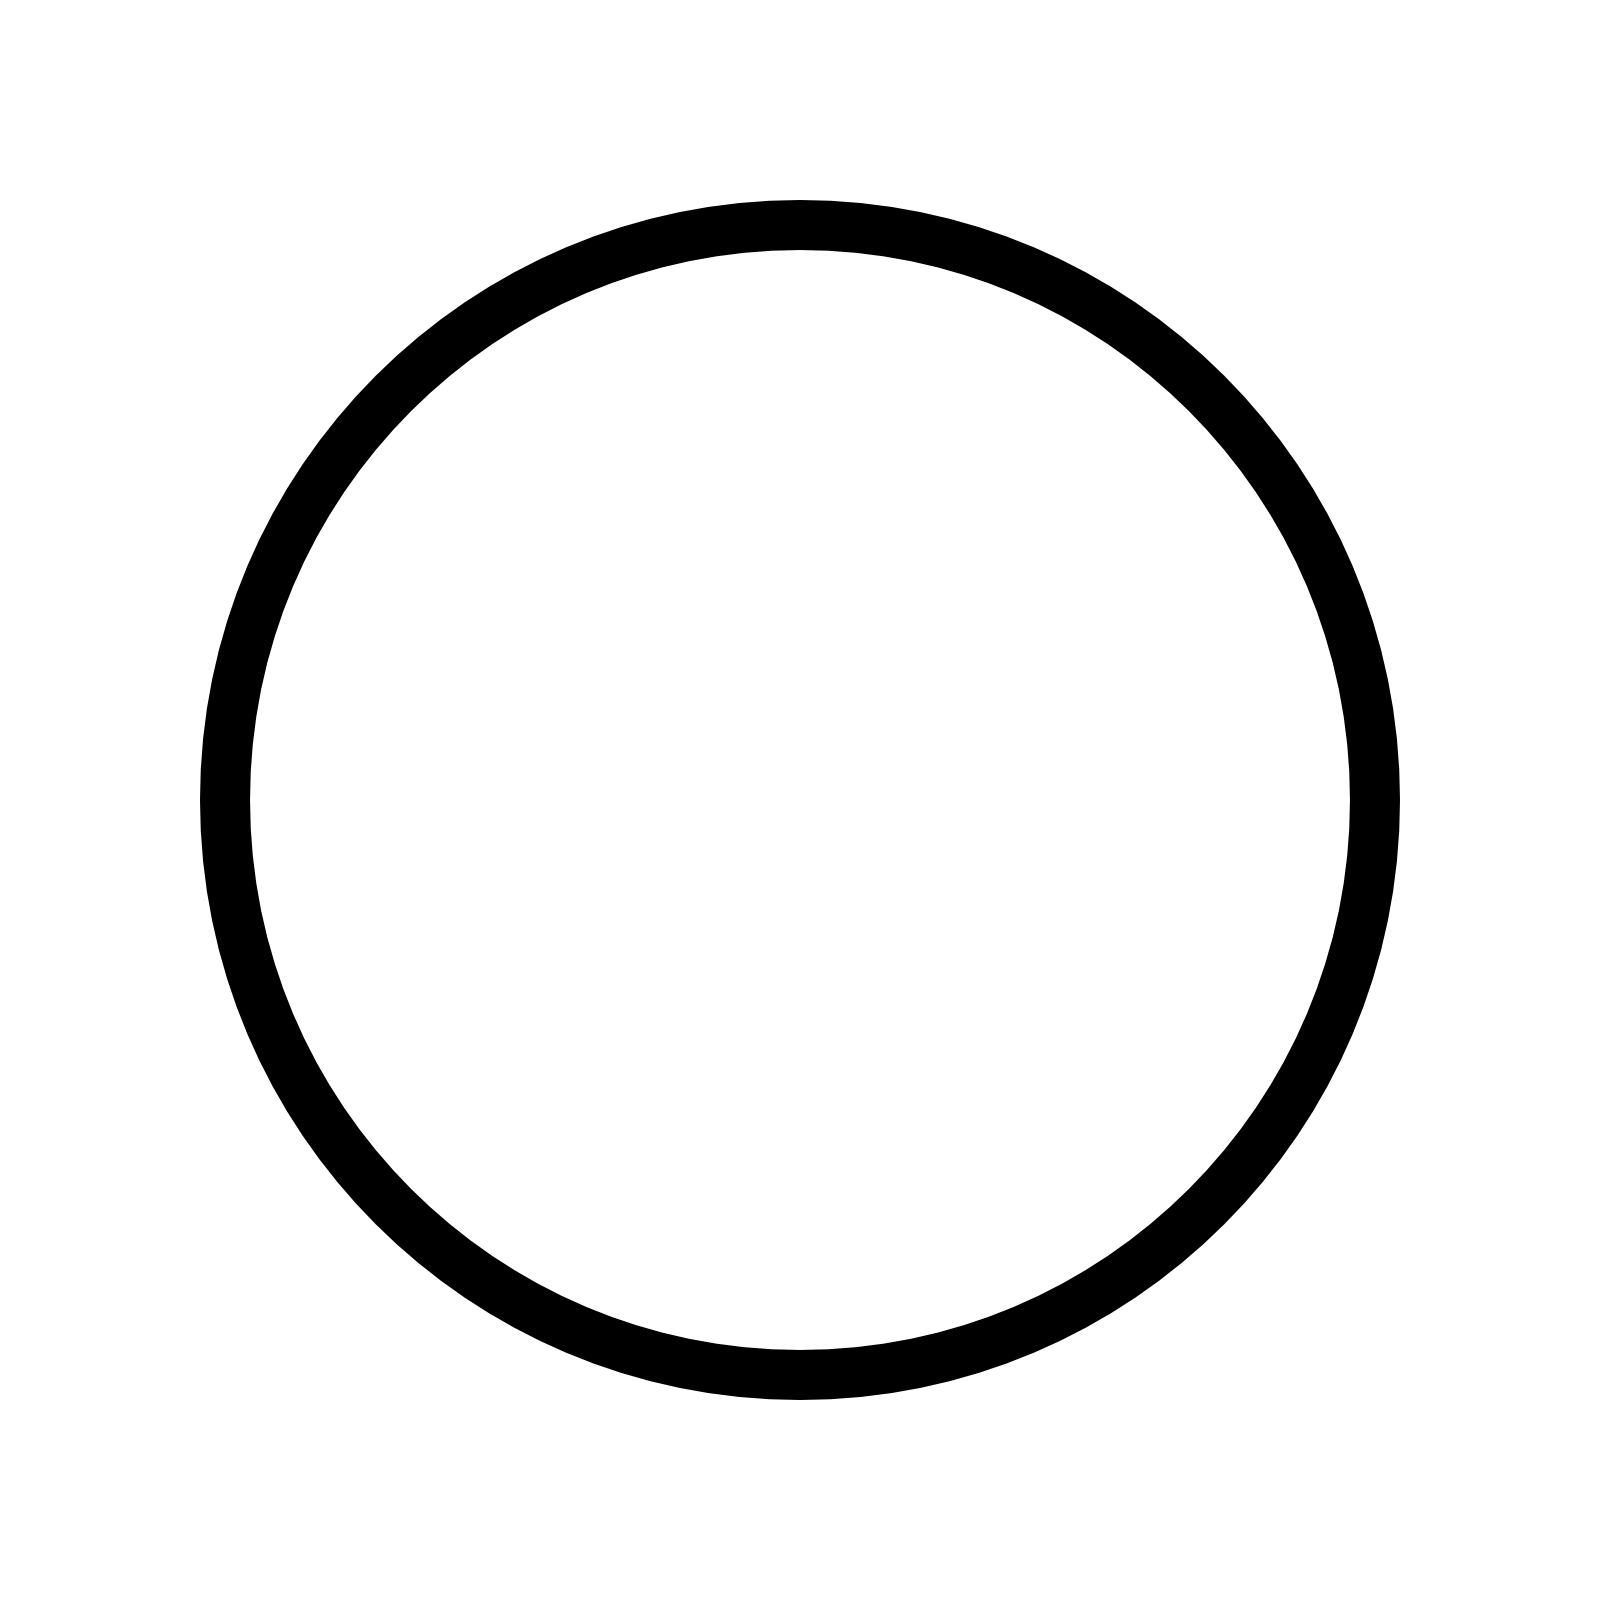 Cool Circle Designs Png image